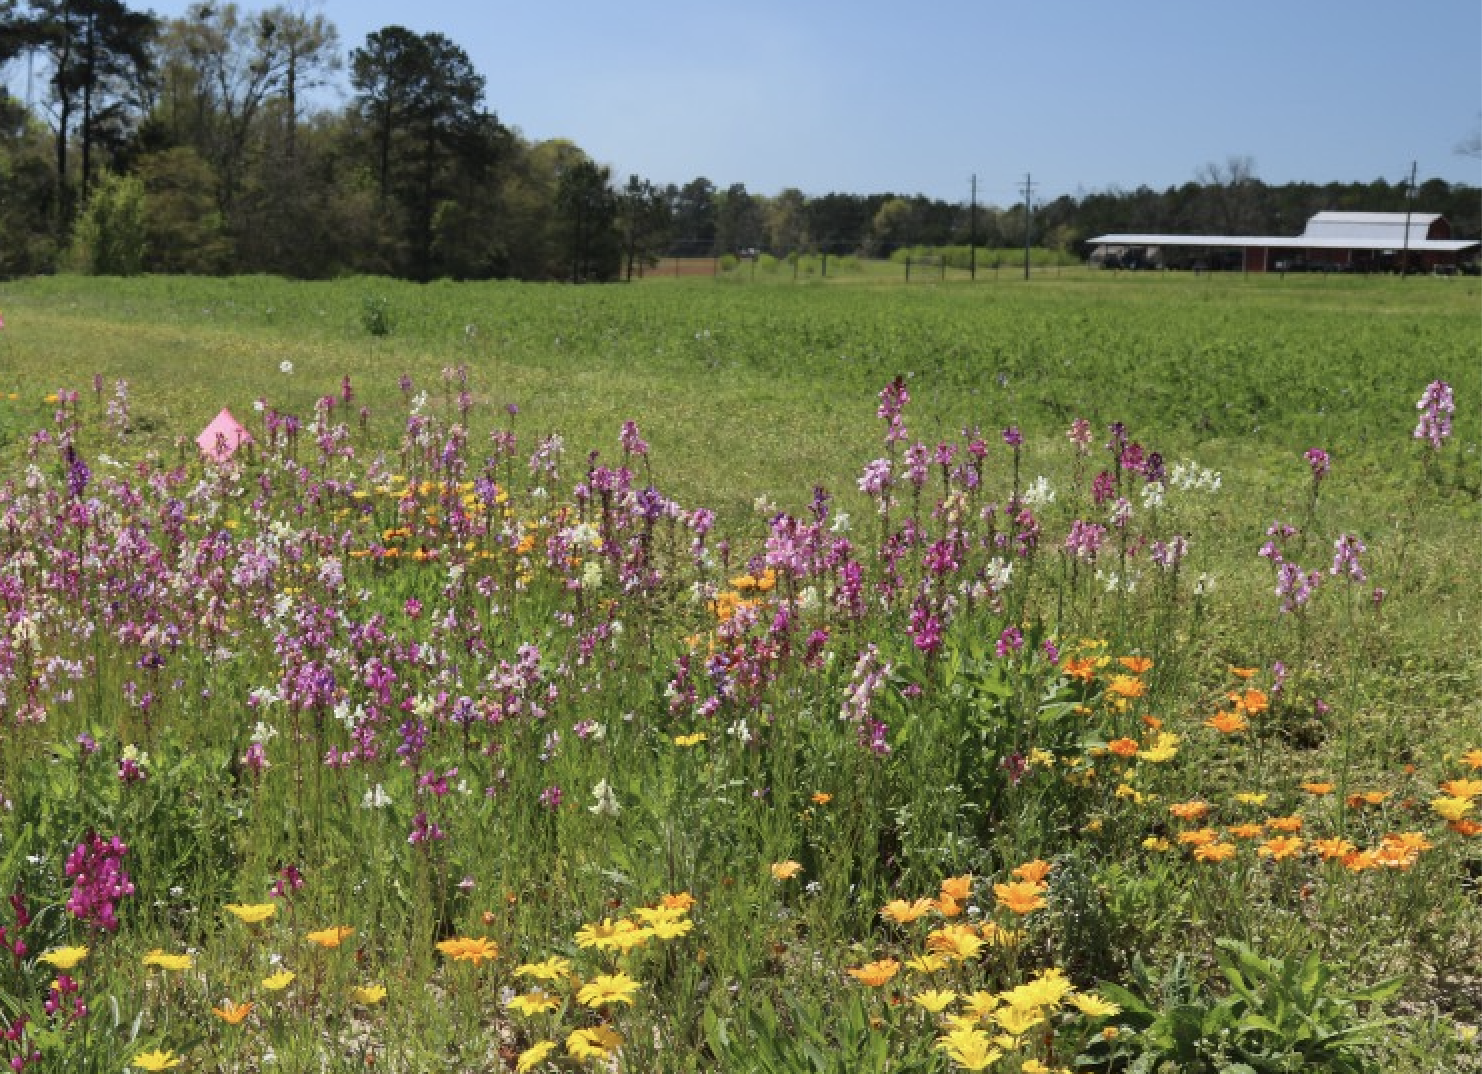 Native wildflowers grow in field margins.